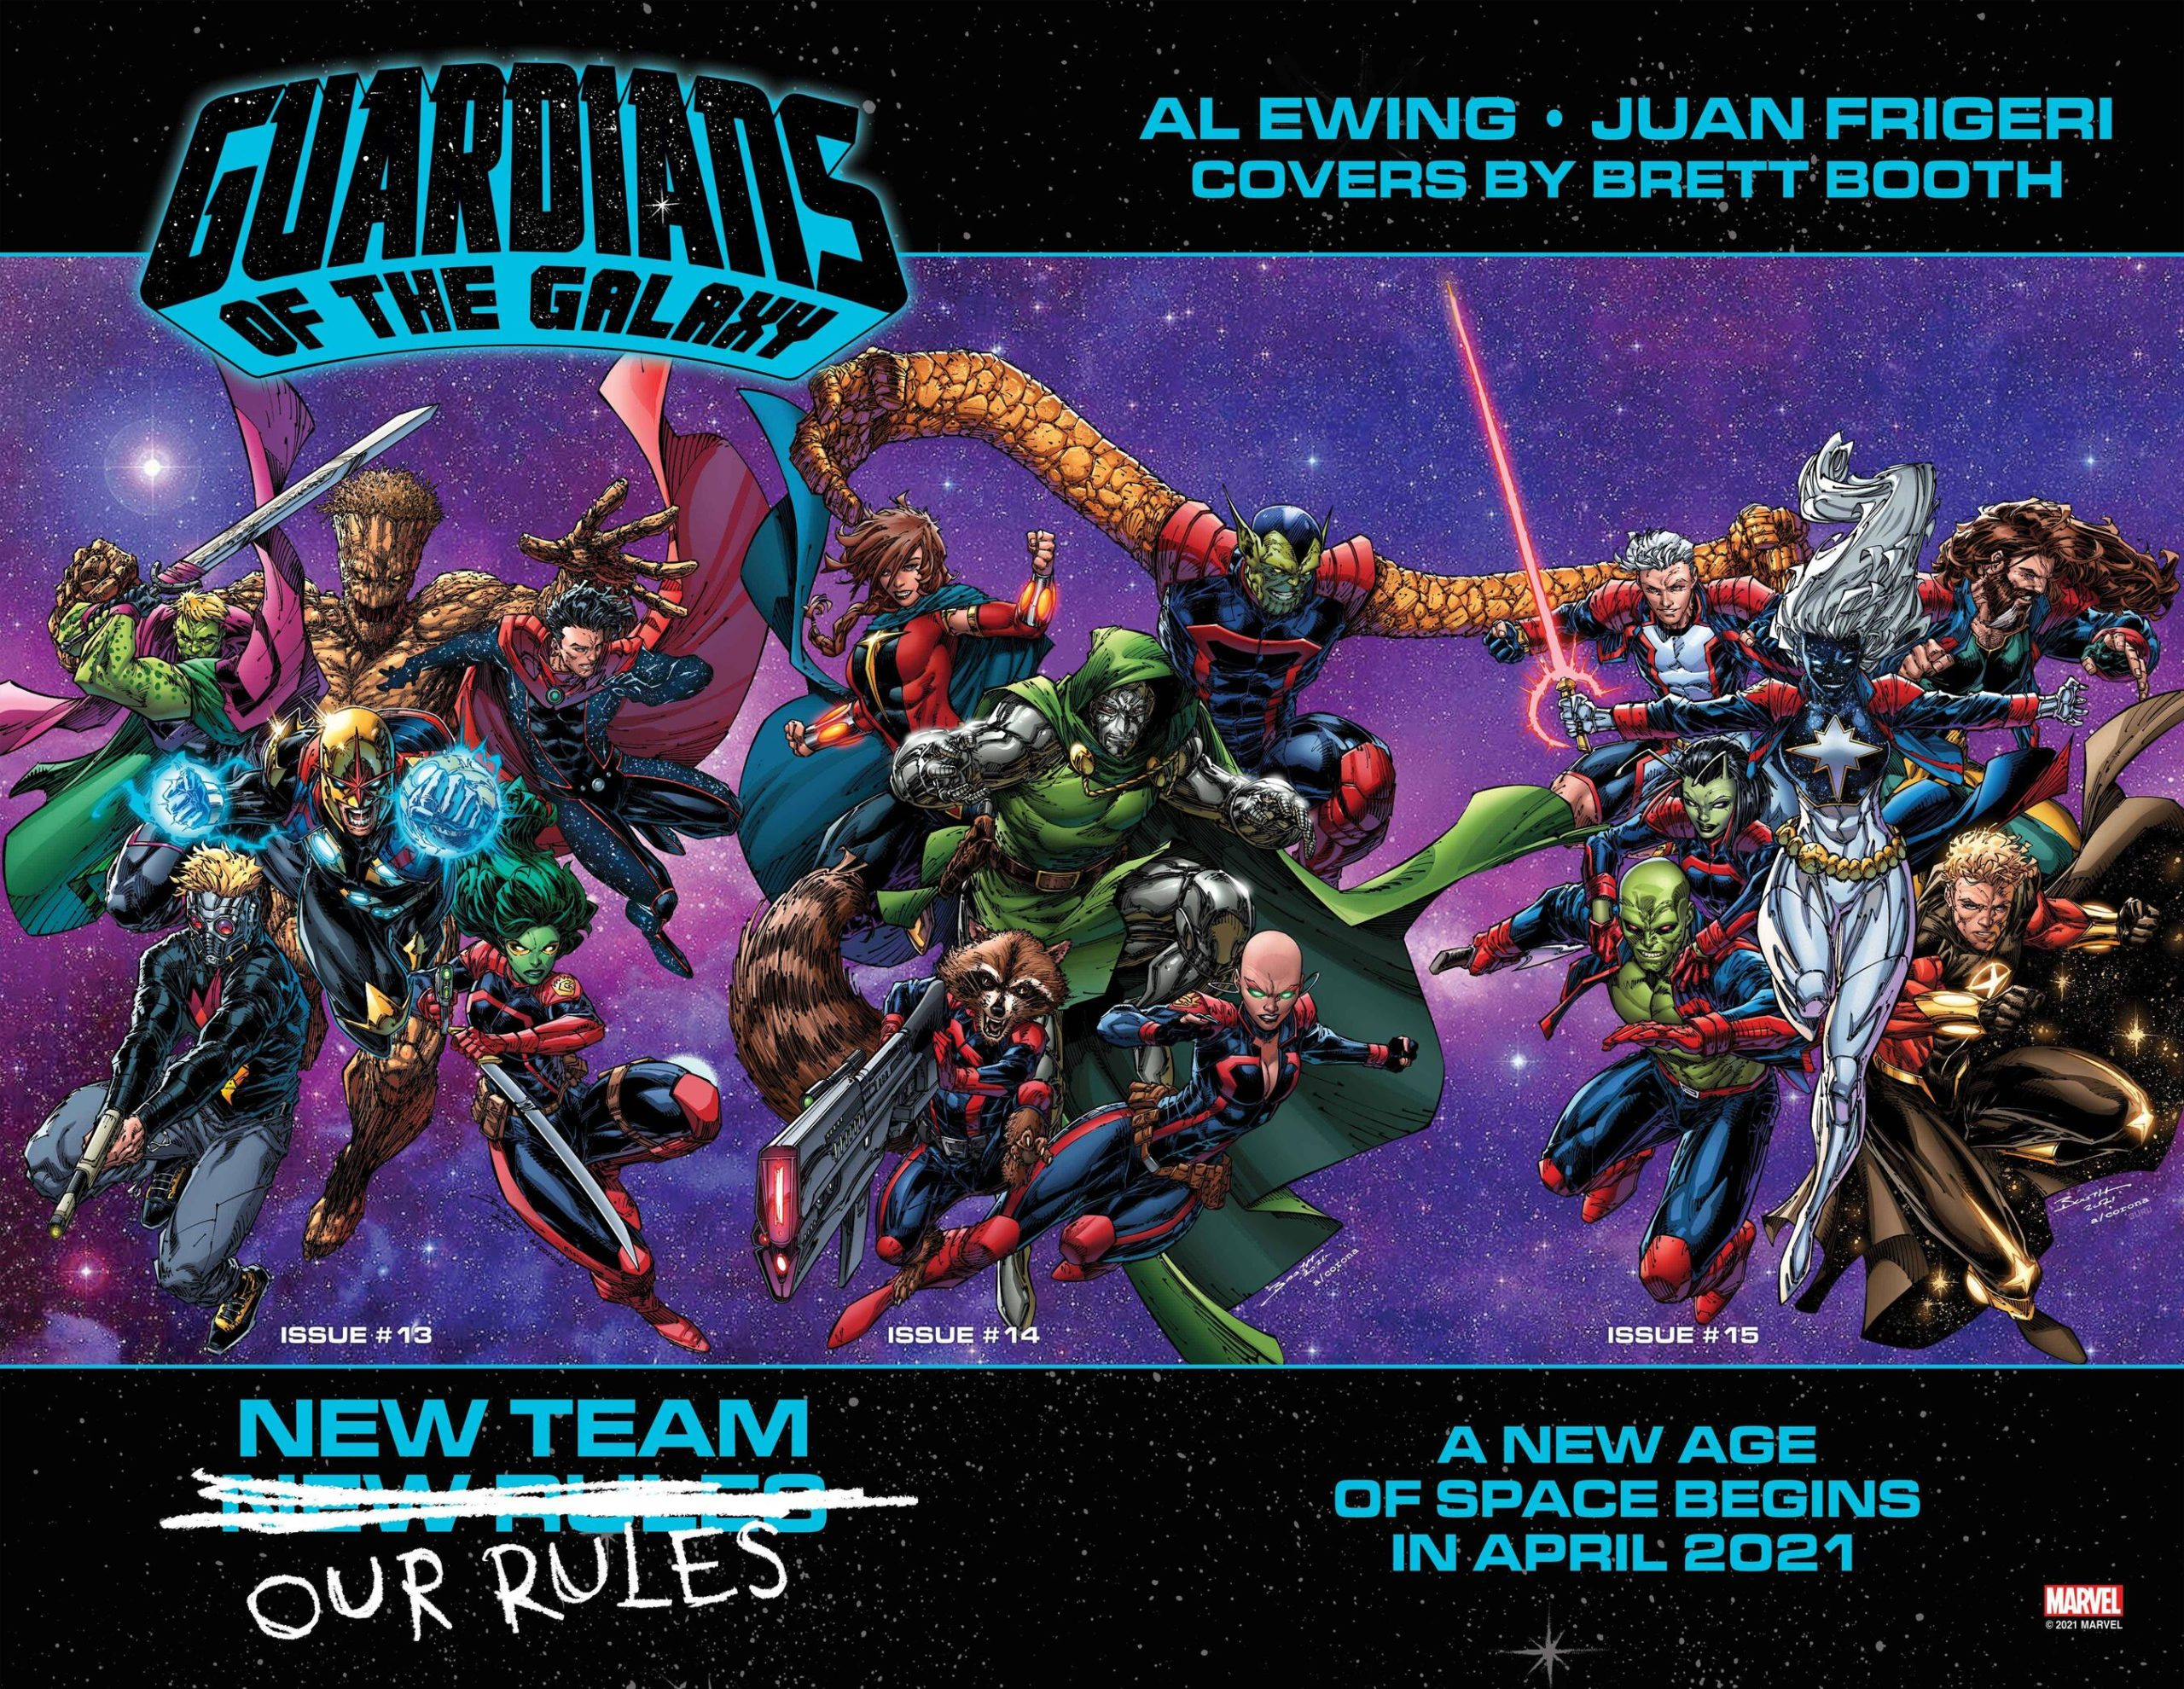 Guardians of the Galaxy #13 Promo Art